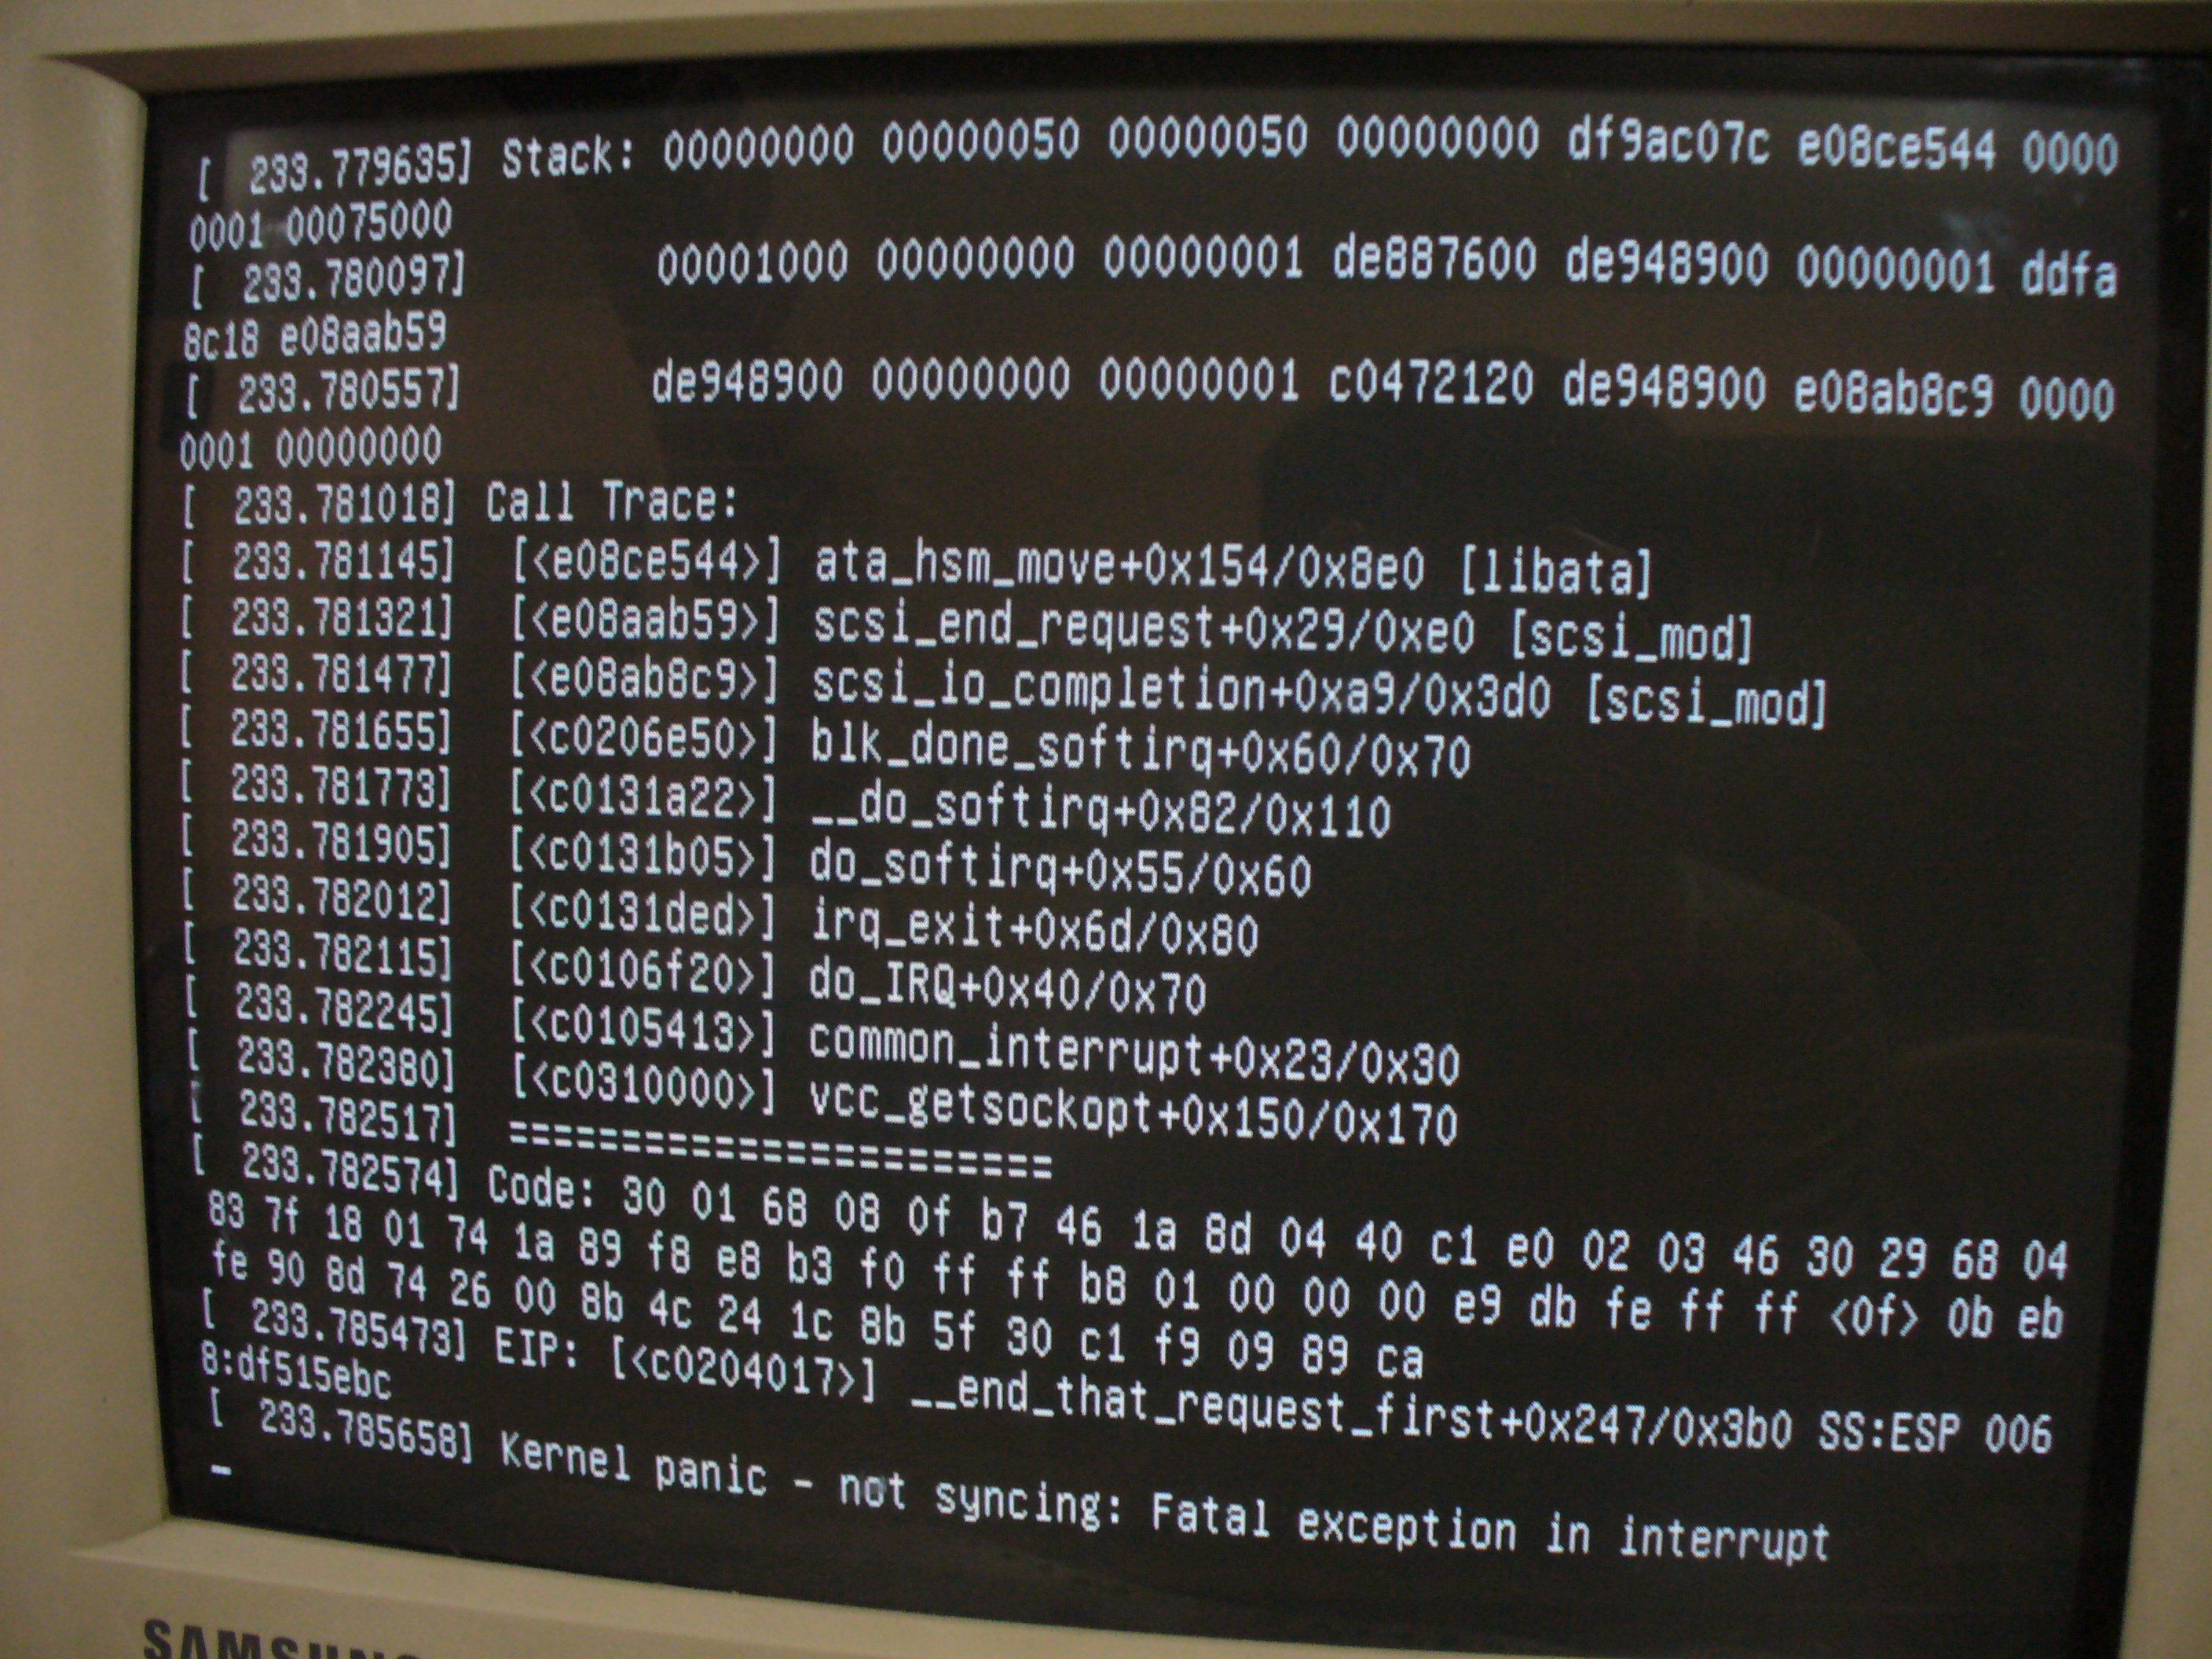 https://i2.wp.com/upload.wikimedia.org/wikipedia/commons/2/2b/Ubuntu-linux-kernel-panic-by-jpangamarca.JPG